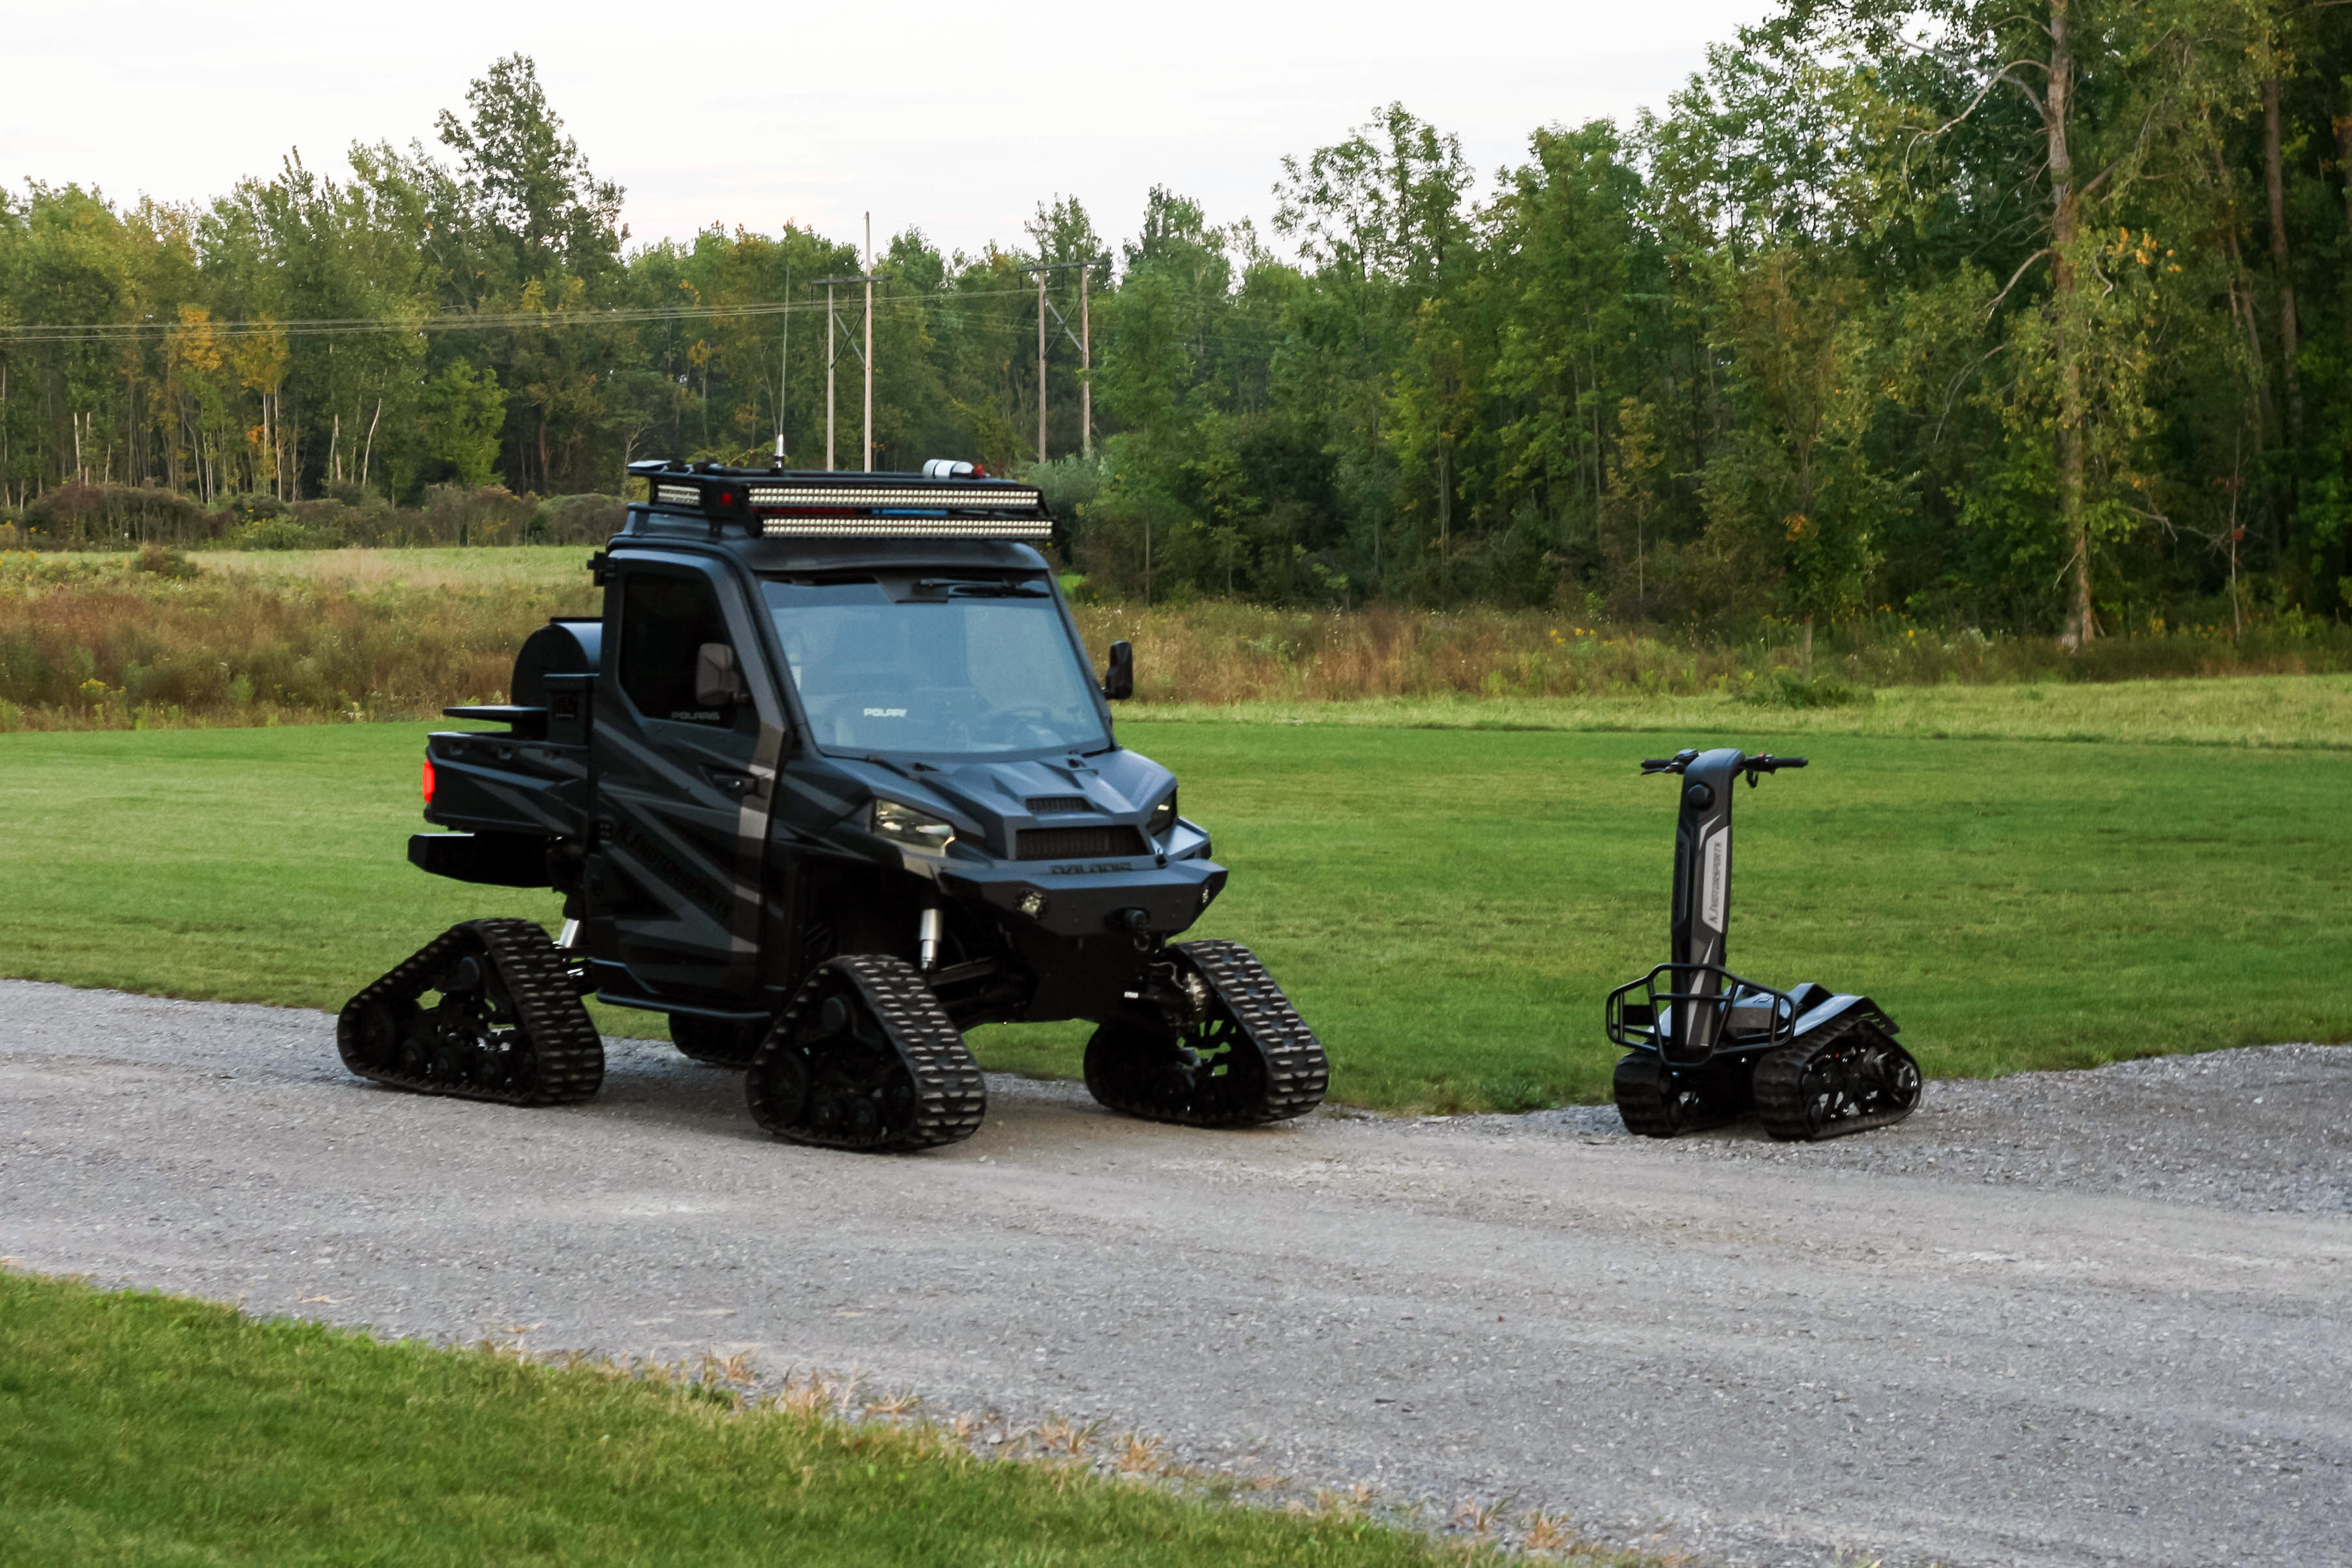 2017 Polaris Ranger Xp 1000 Eps Northstar Hvac Edition Trailmaster 2000 Driver Siderelayspower Windowsthe Wireing Harness When The Beef Isnt On Grill There Is Still Plenty To Be Found All Over This Ruggedpro Bolt Front Rear Frame Brace Kit We Developed